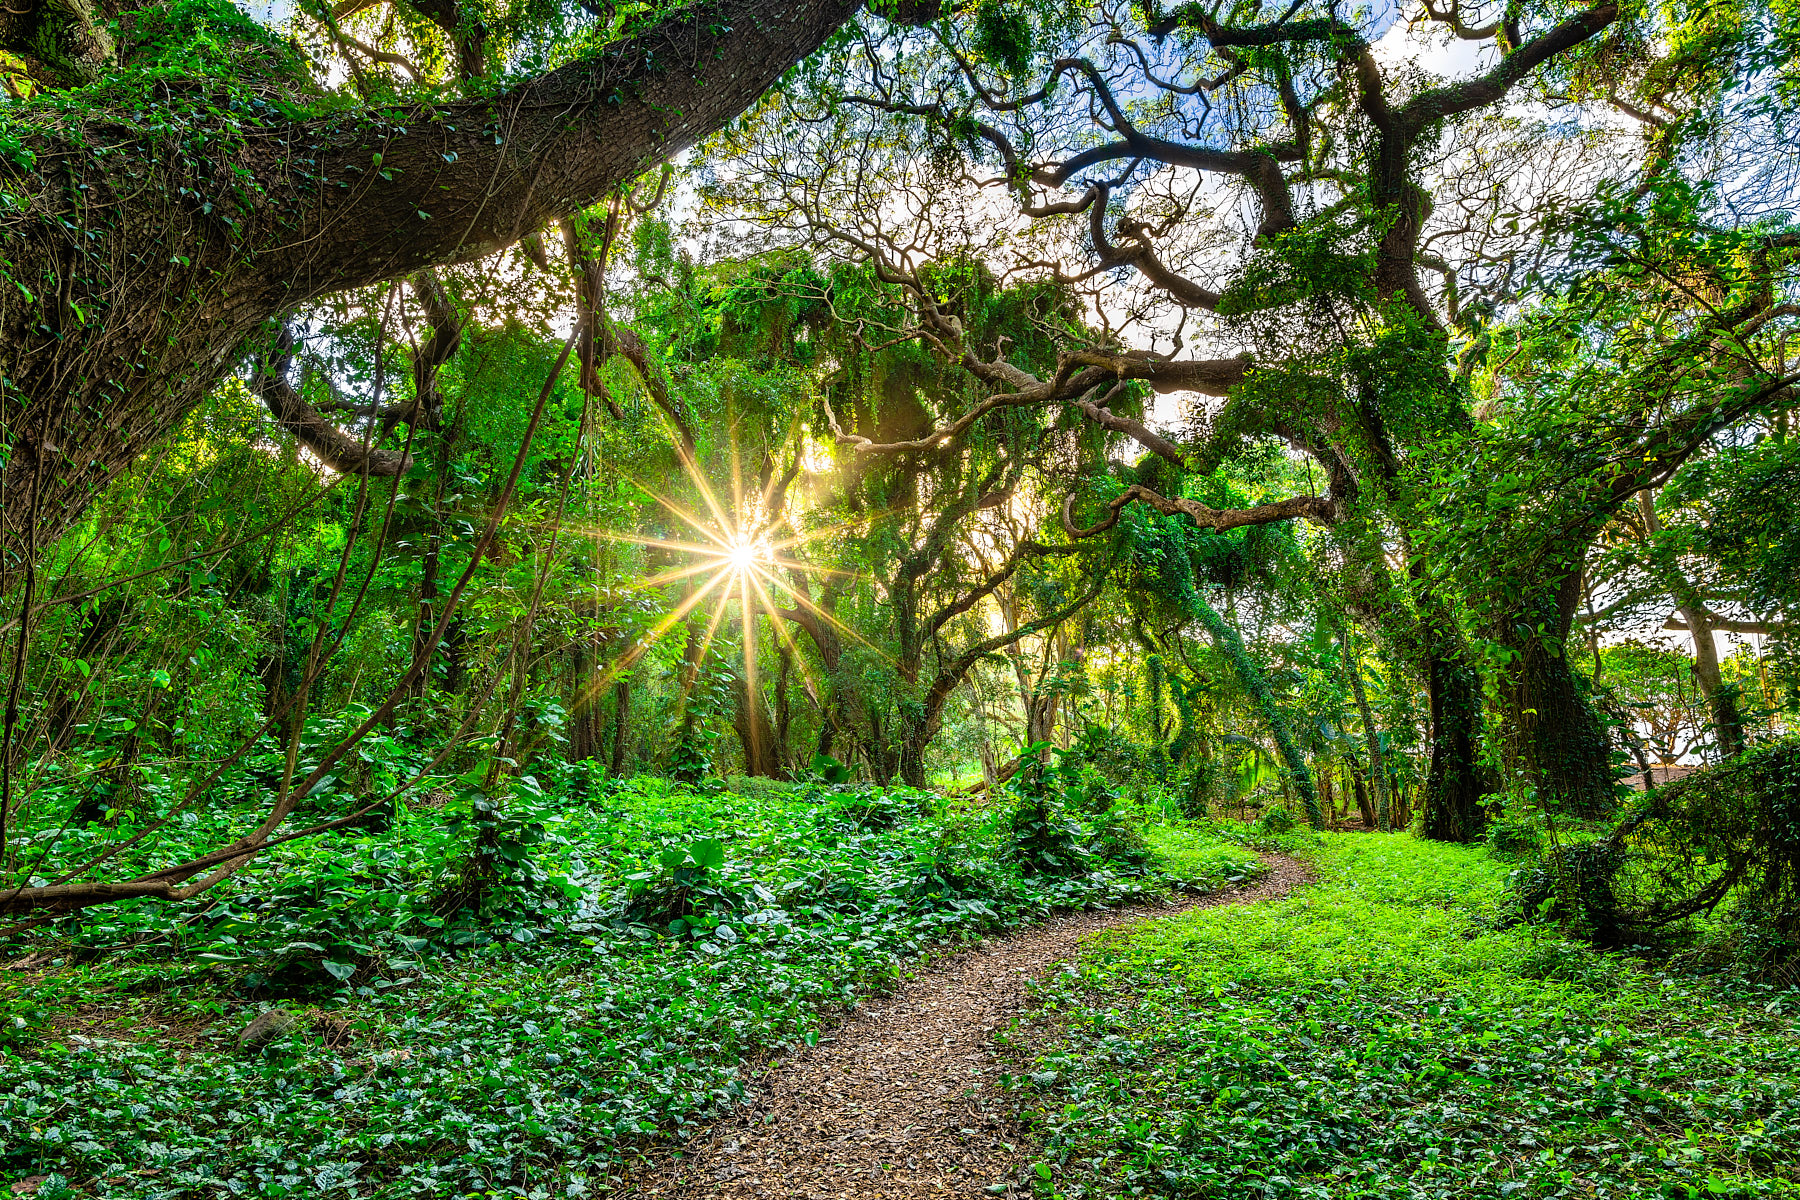 a beautiful forest scene at the lush Honolua Bay is accented by a path and a sun star peeking through the tropical foliage